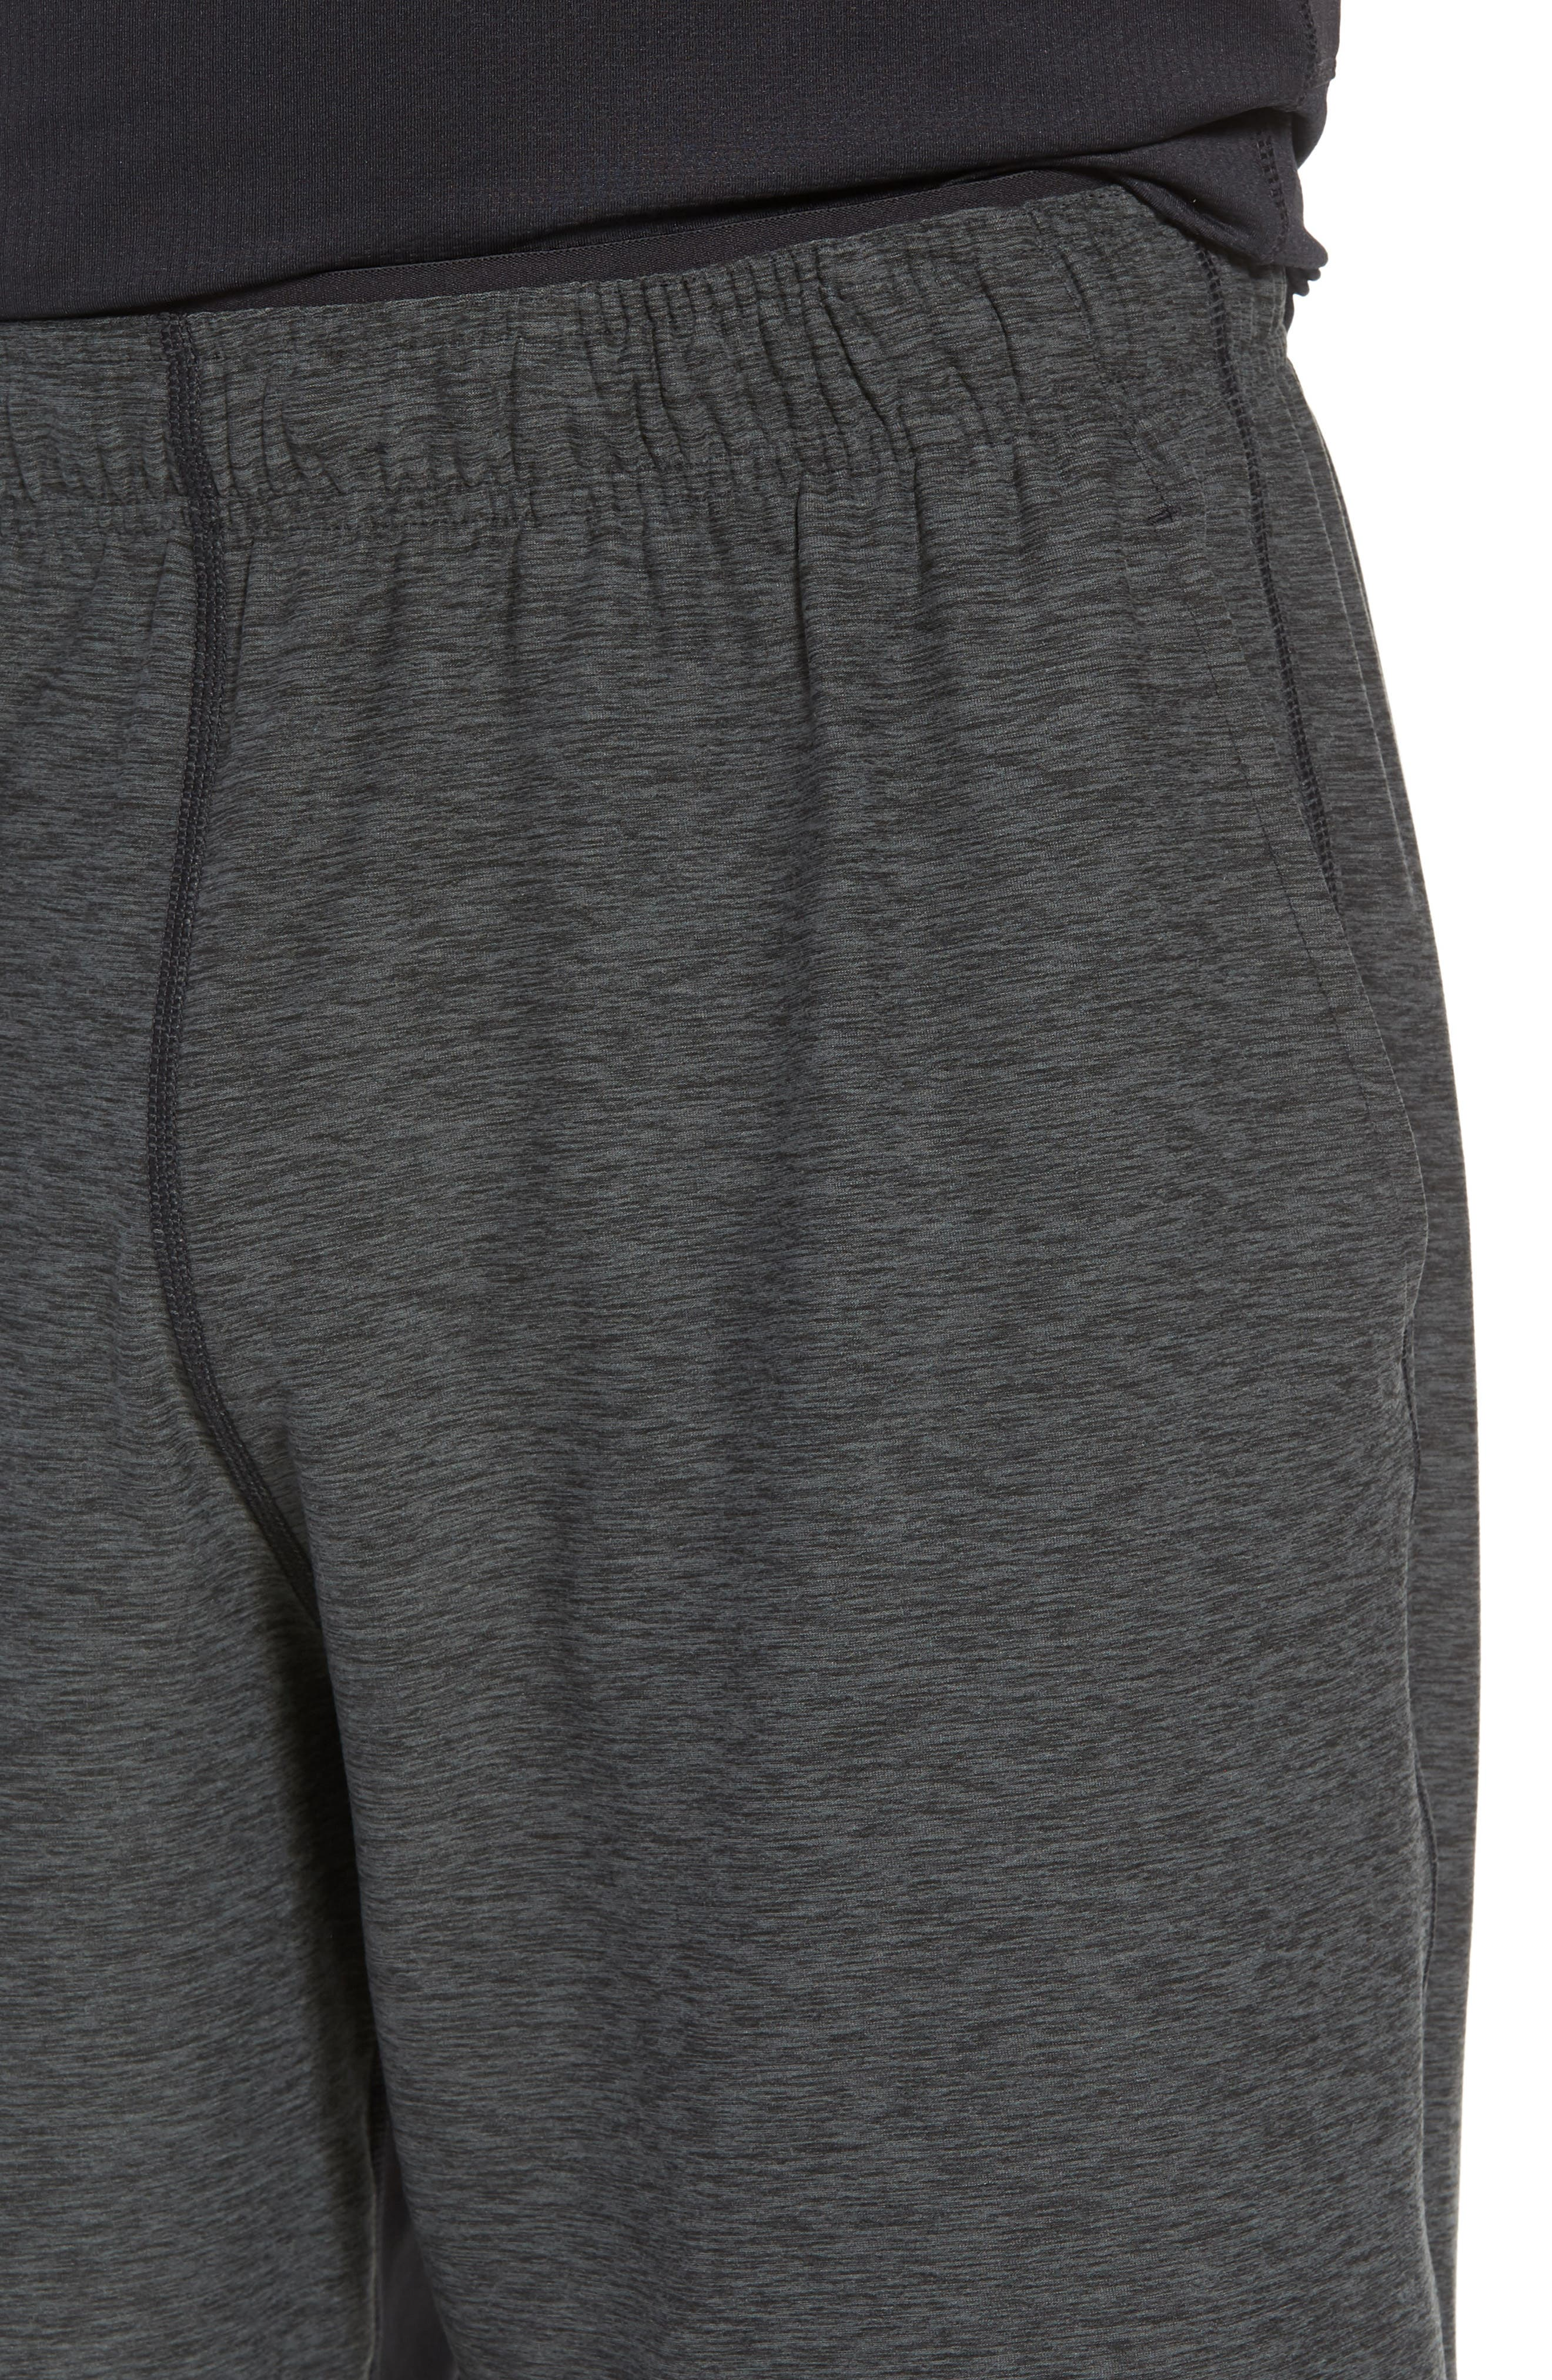 Anticipate Shorts,                             Alternate thumbnail 4, color,                             HEATHER CHARCOAL